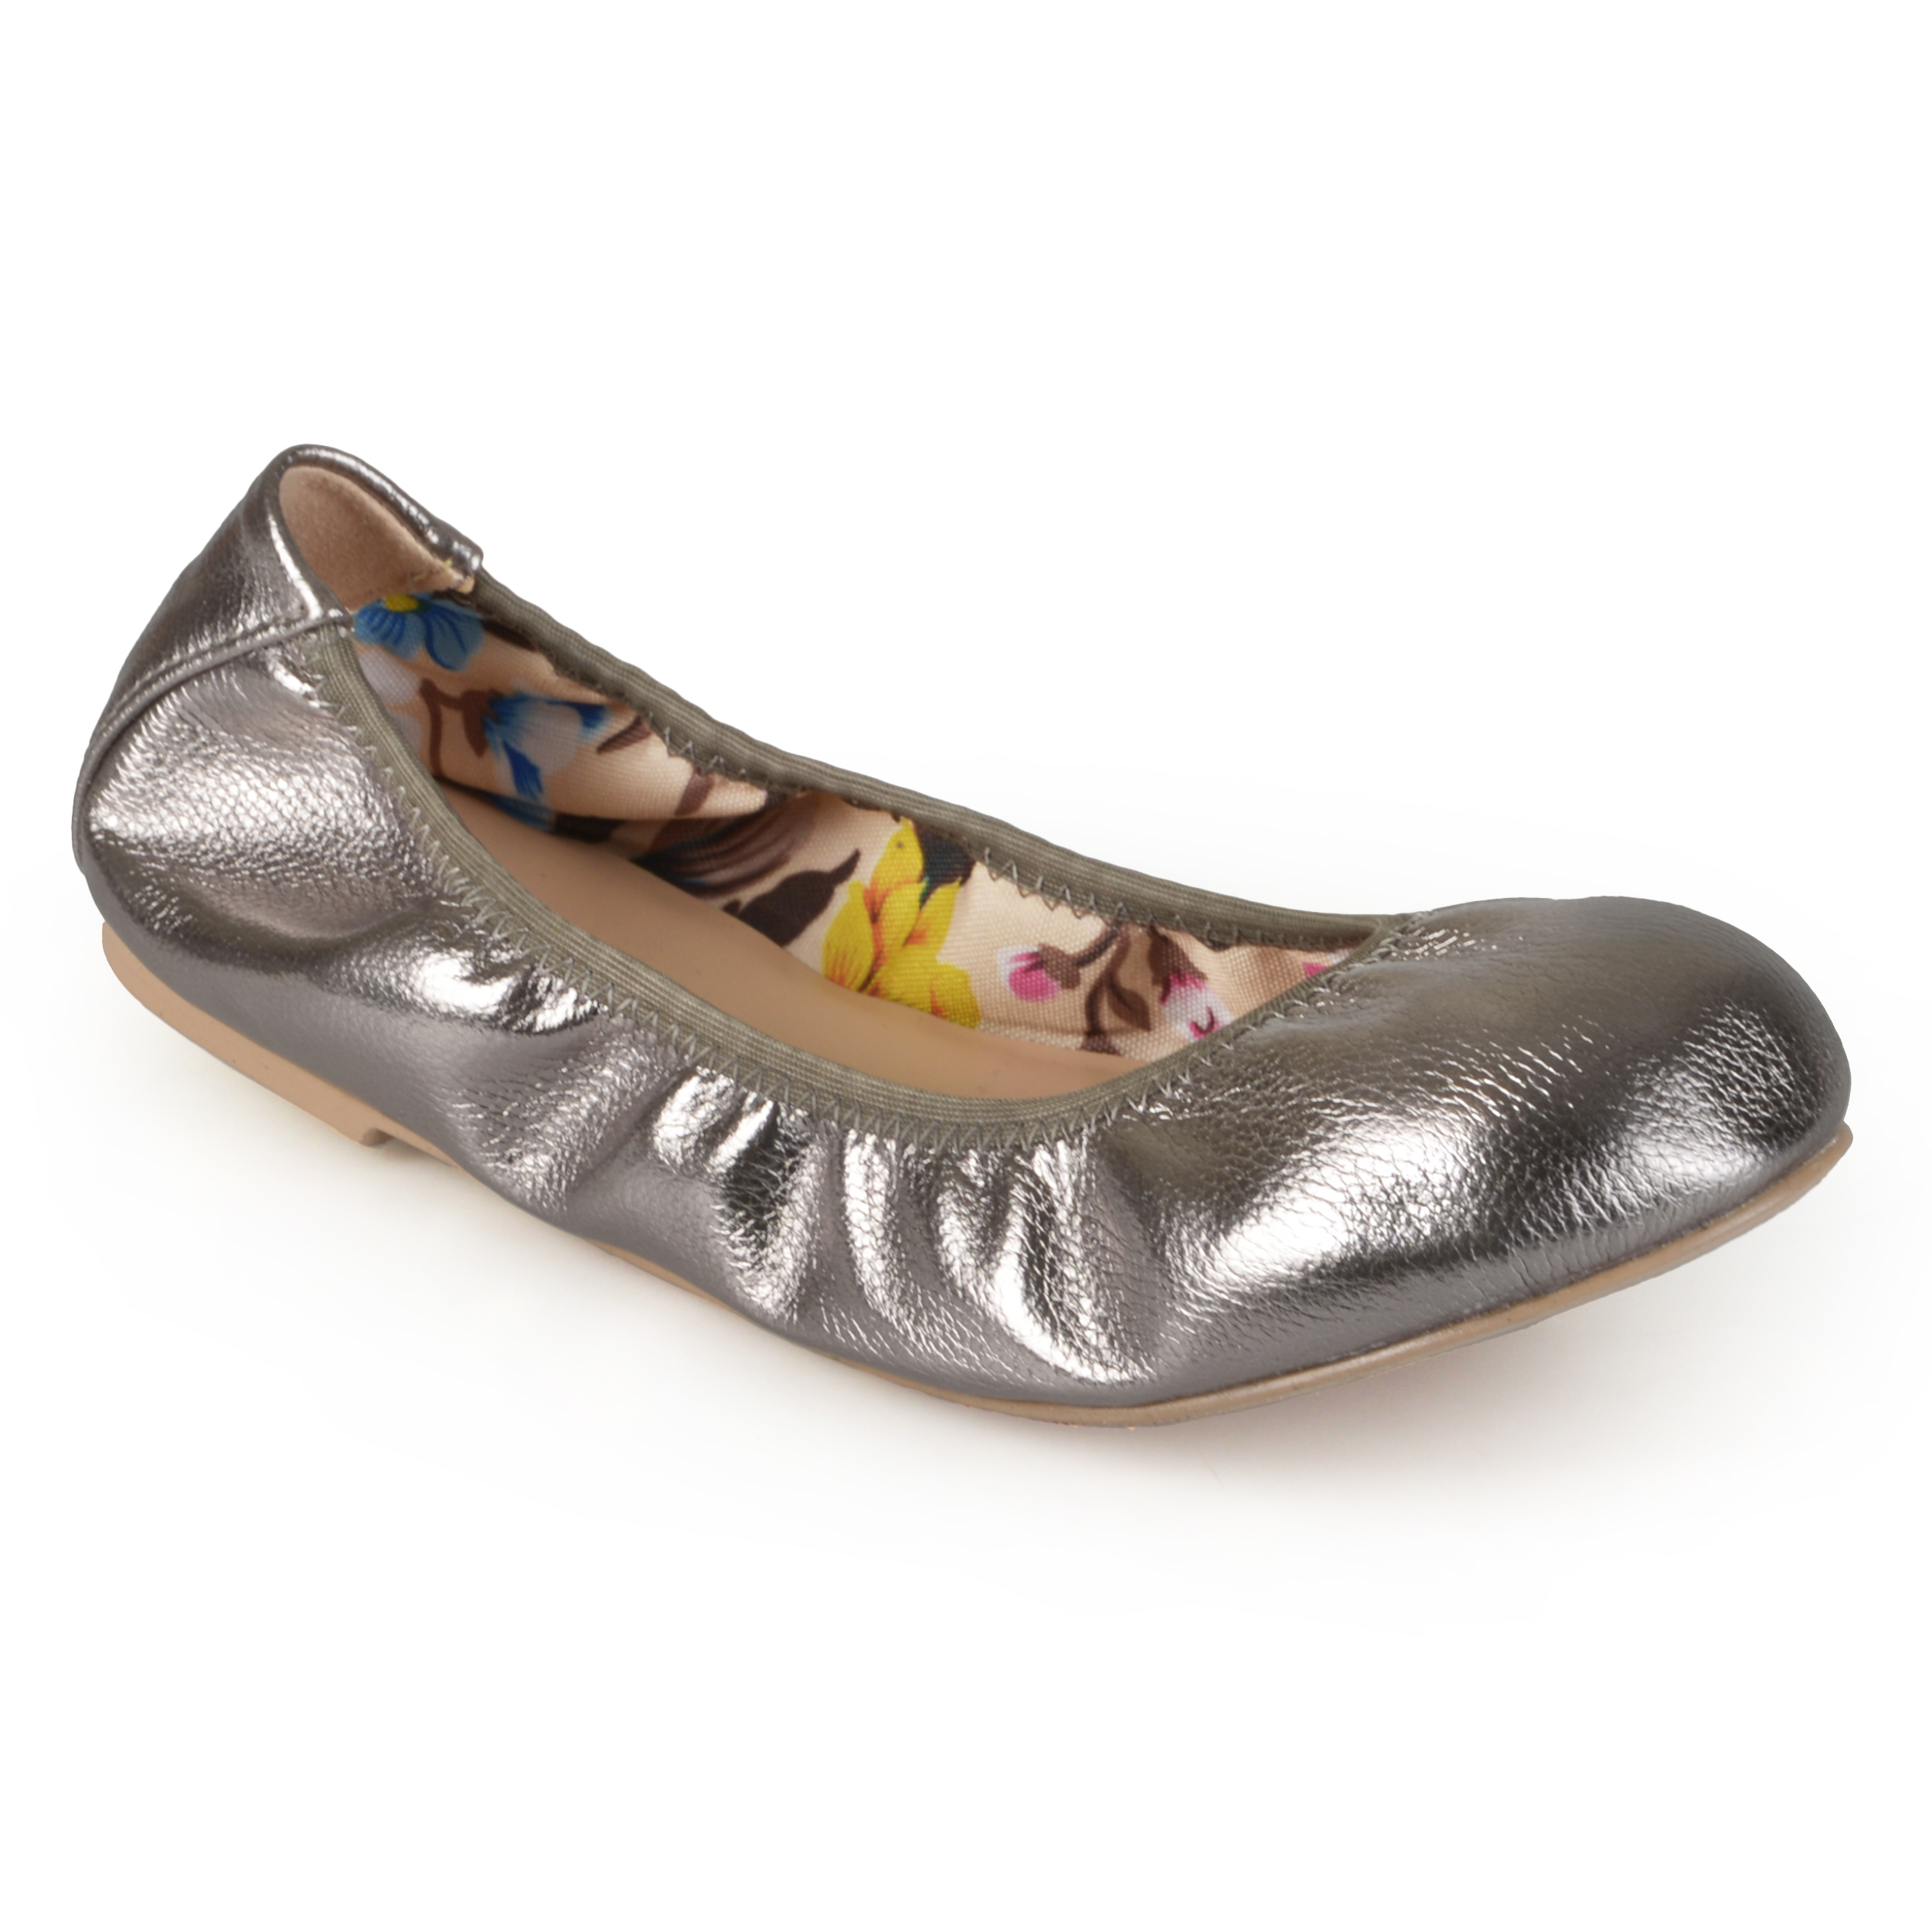 Home Women Flats Ballet Flats Women's Ballet Flat Shoes. The rounded toe gives your foot plenty of room, and the lightweight, flexible sole and upper make walking a breeze. You can wear them with jeans or slacks and look great, and you won't need to soak your feet after a day of shopping for the family and taking care of things around .